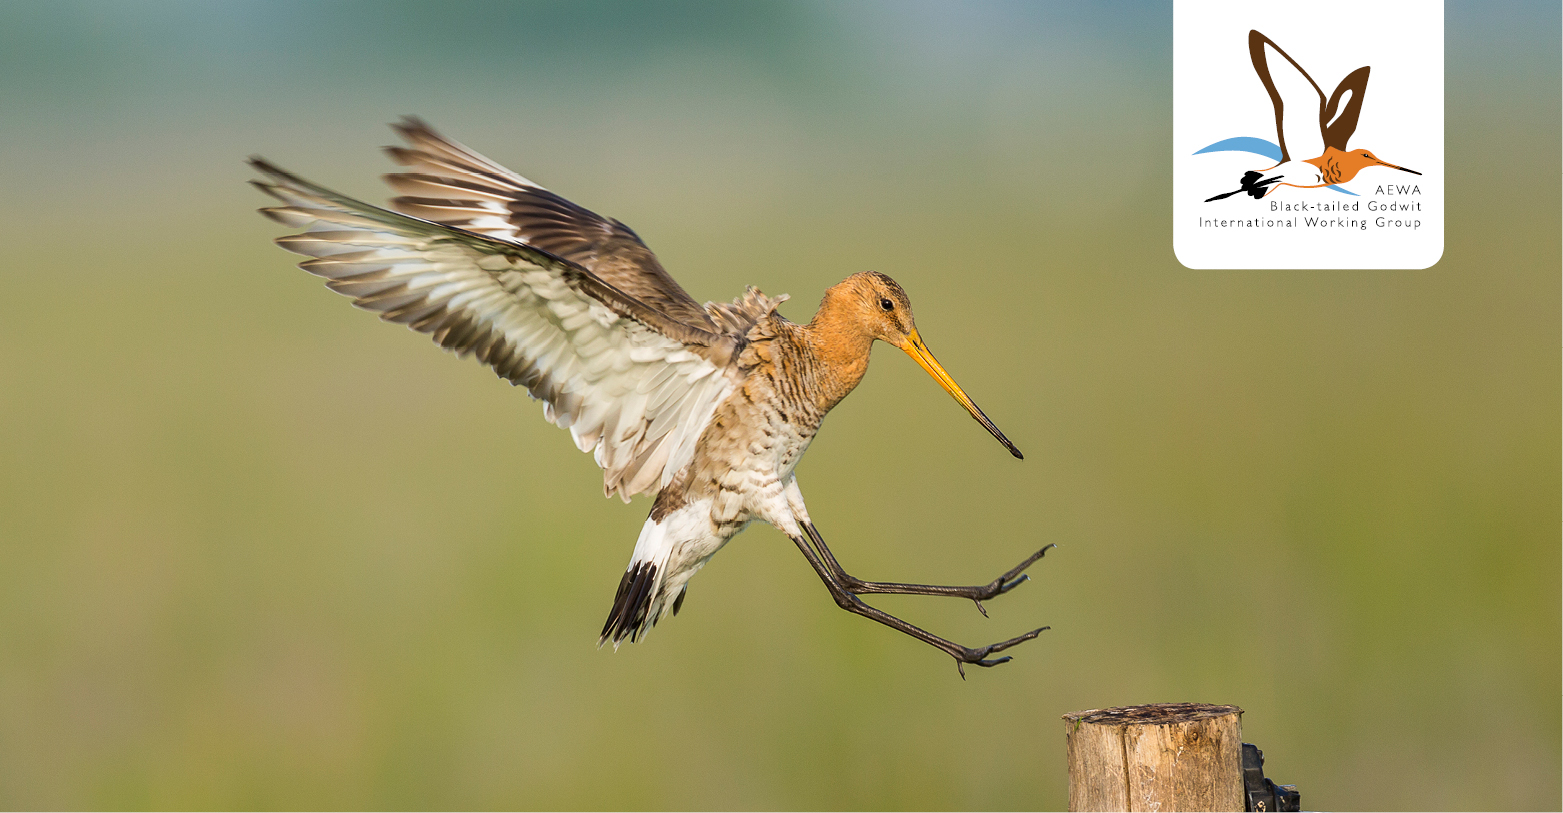 Black-tailed Godwit North-Western - 715.8KB